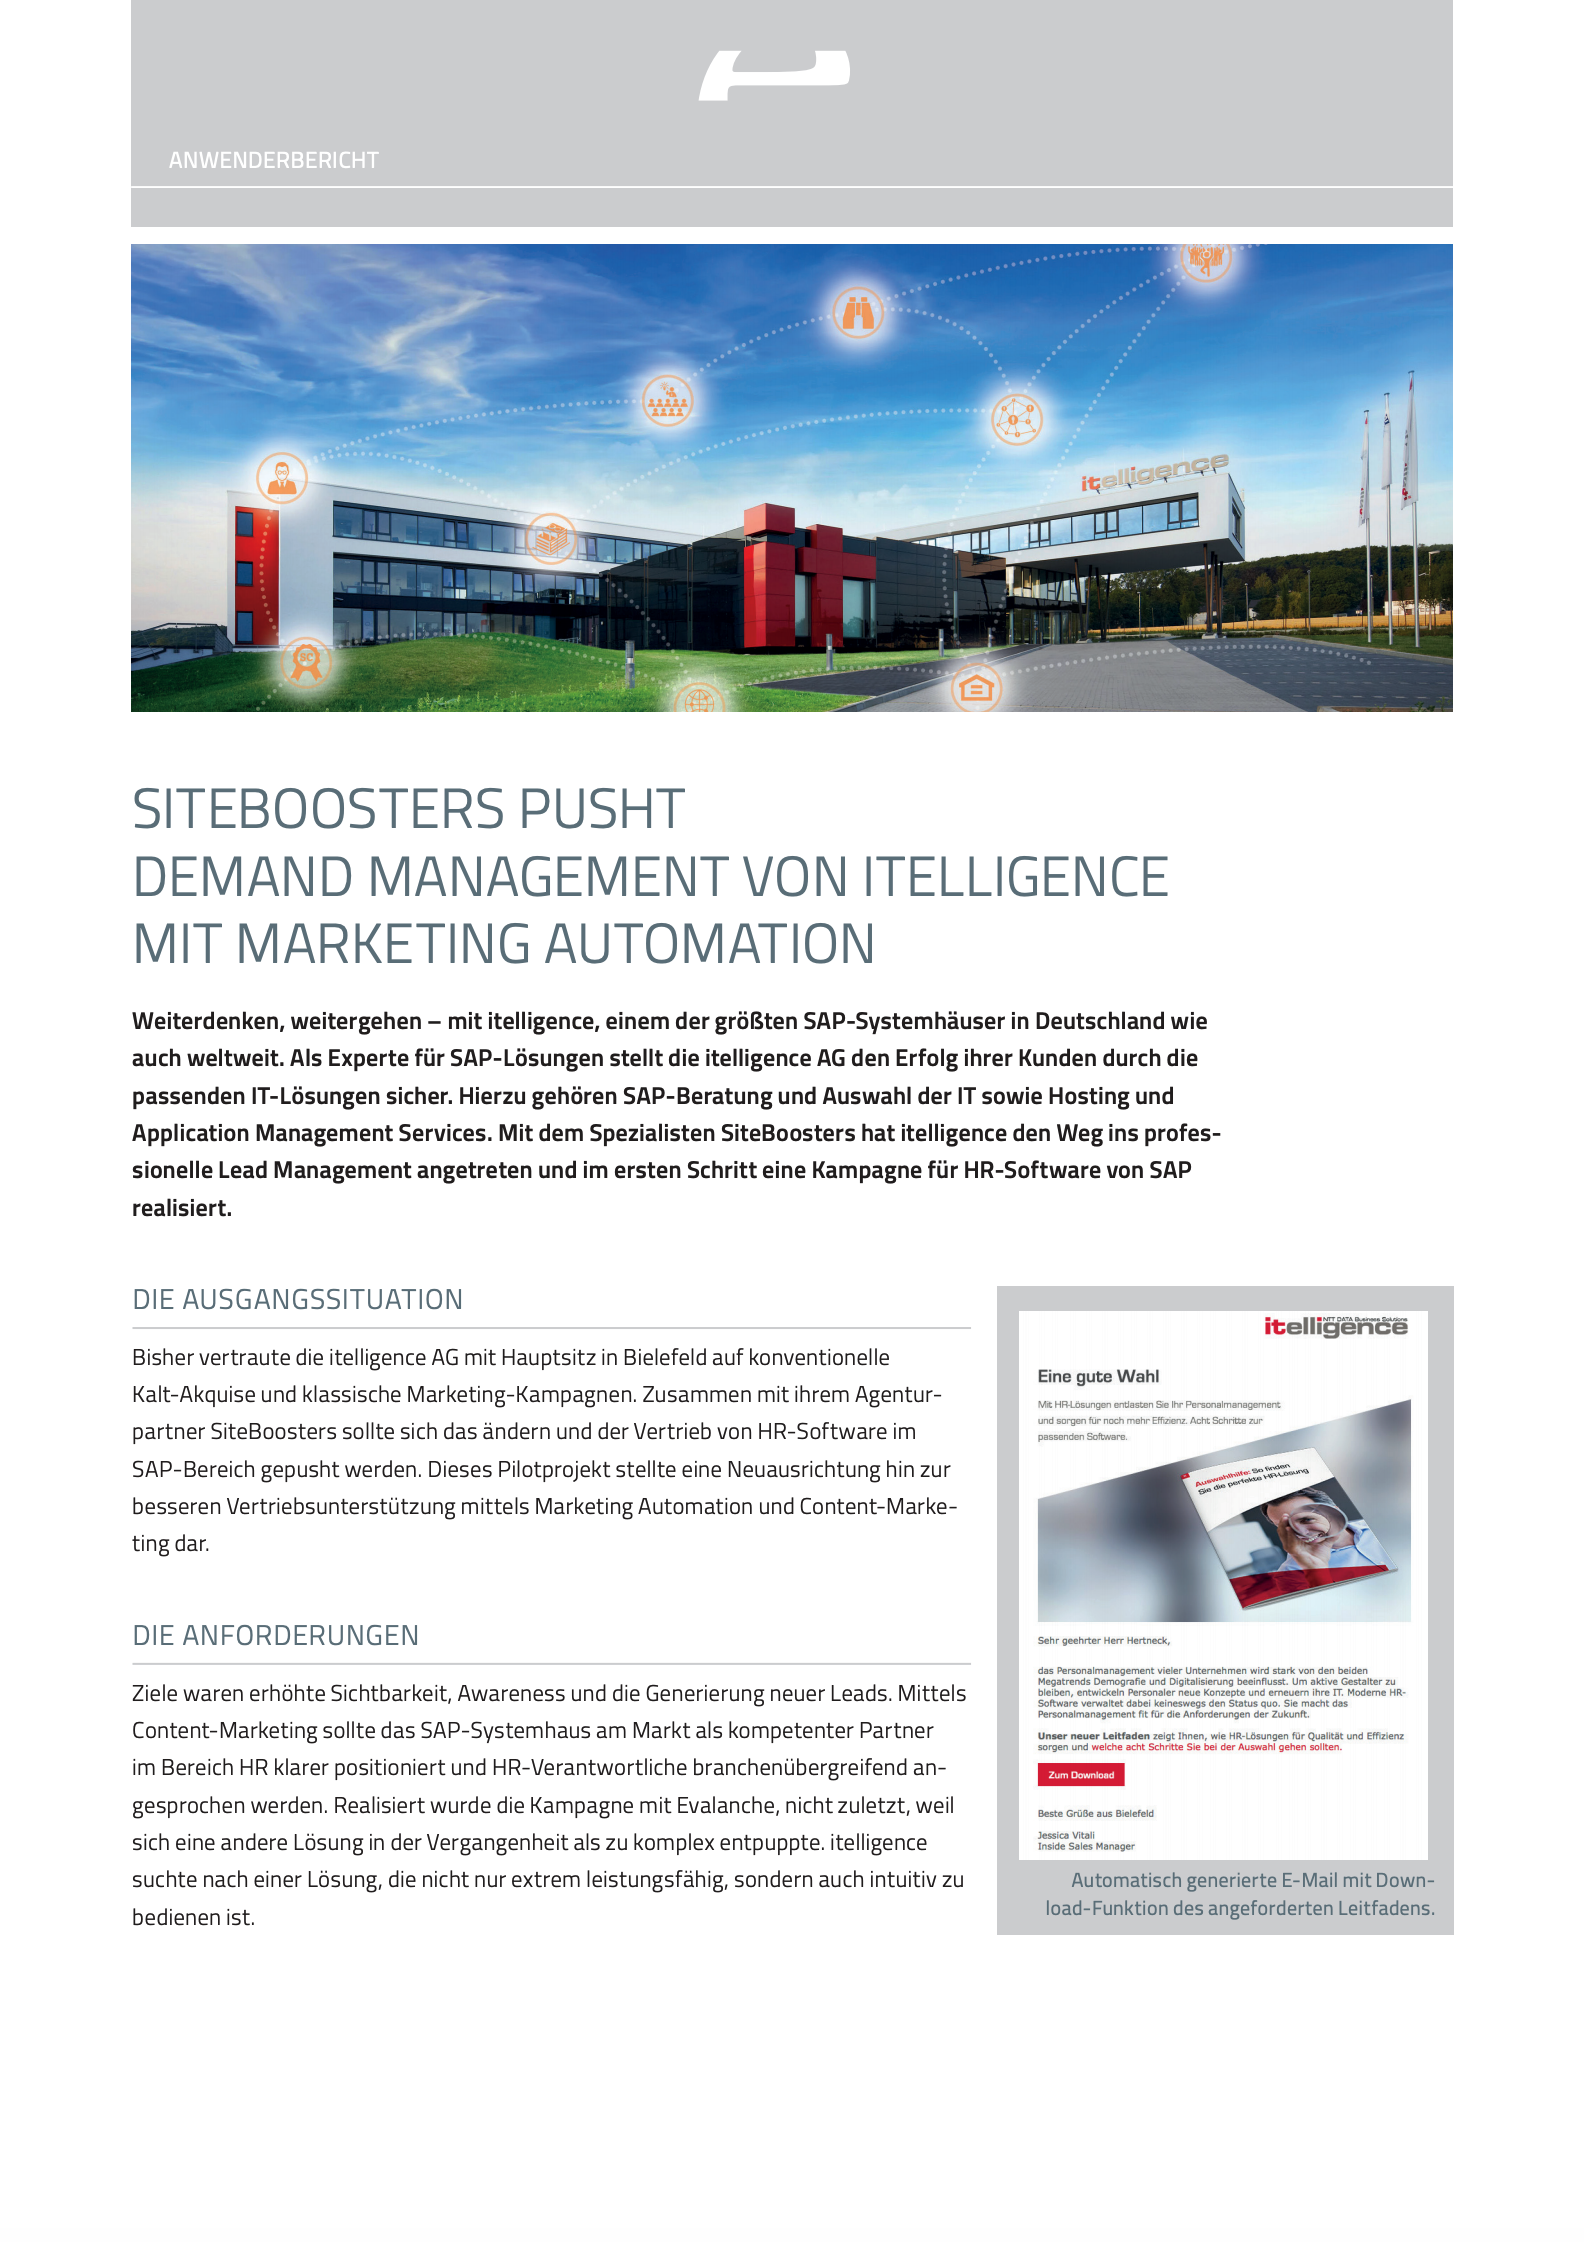 Siteboosters pusht Demand Management von Itelligence mit Marketing Automation